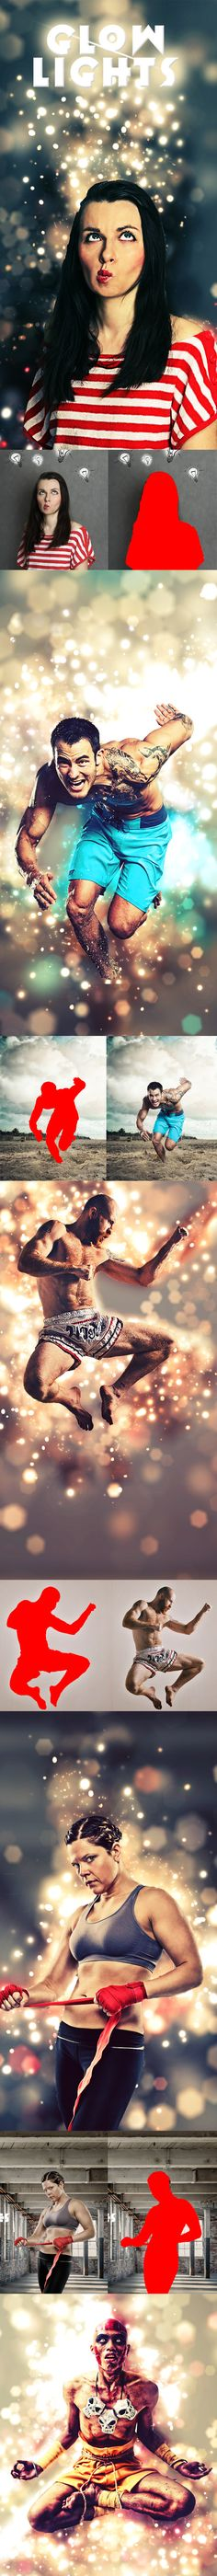 #Glow #Lights Photoshop Action - #Actions #PSAction #Photoshop #PS…